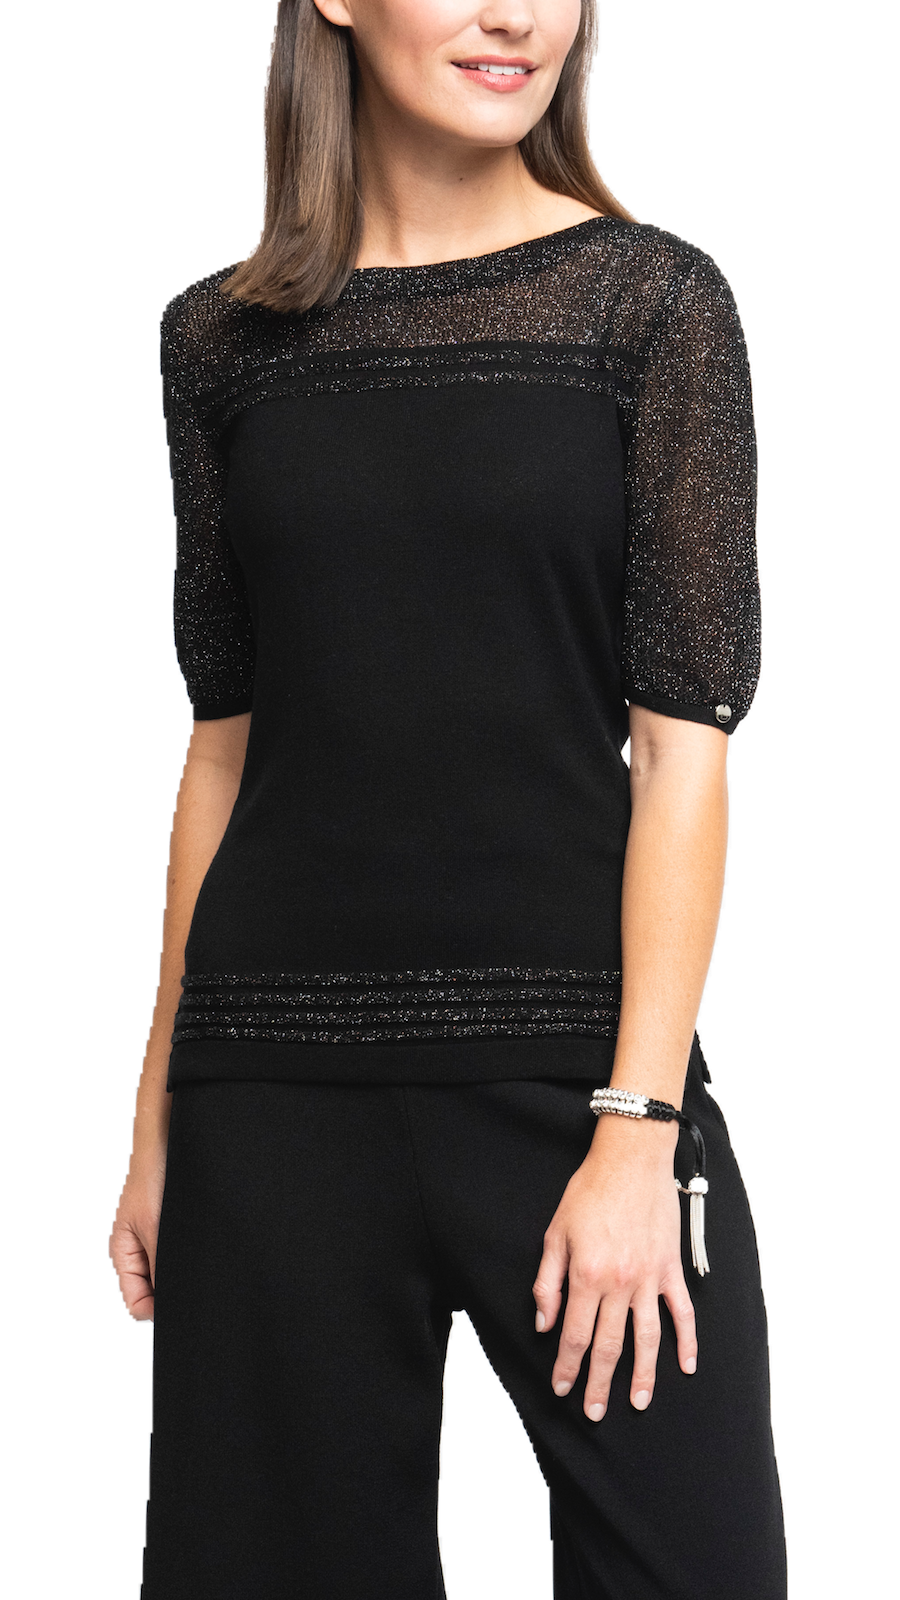 Bella Short Sleeved Top with See-Through Detail on Shoulders and Sleeves; Black/Shimmery Black